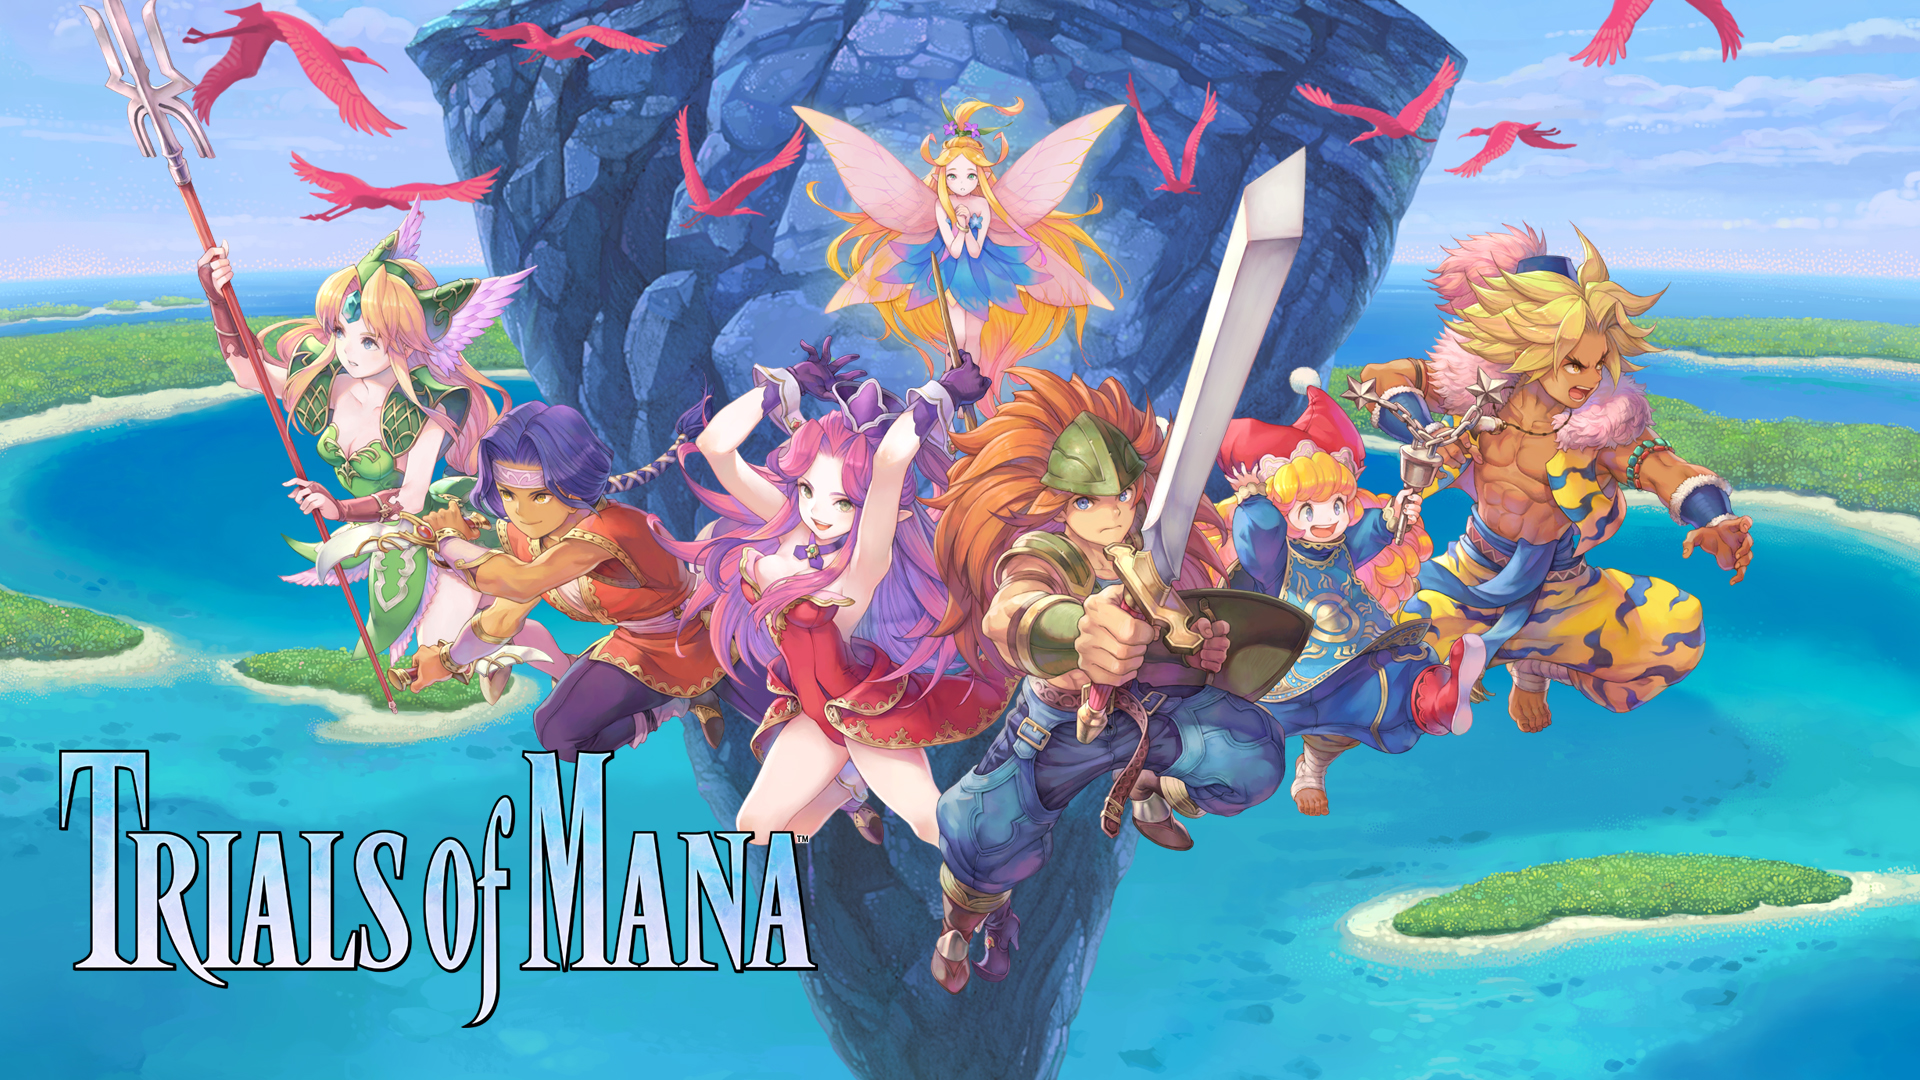 Trials of Mana title with all six main characters jumping out towards the player